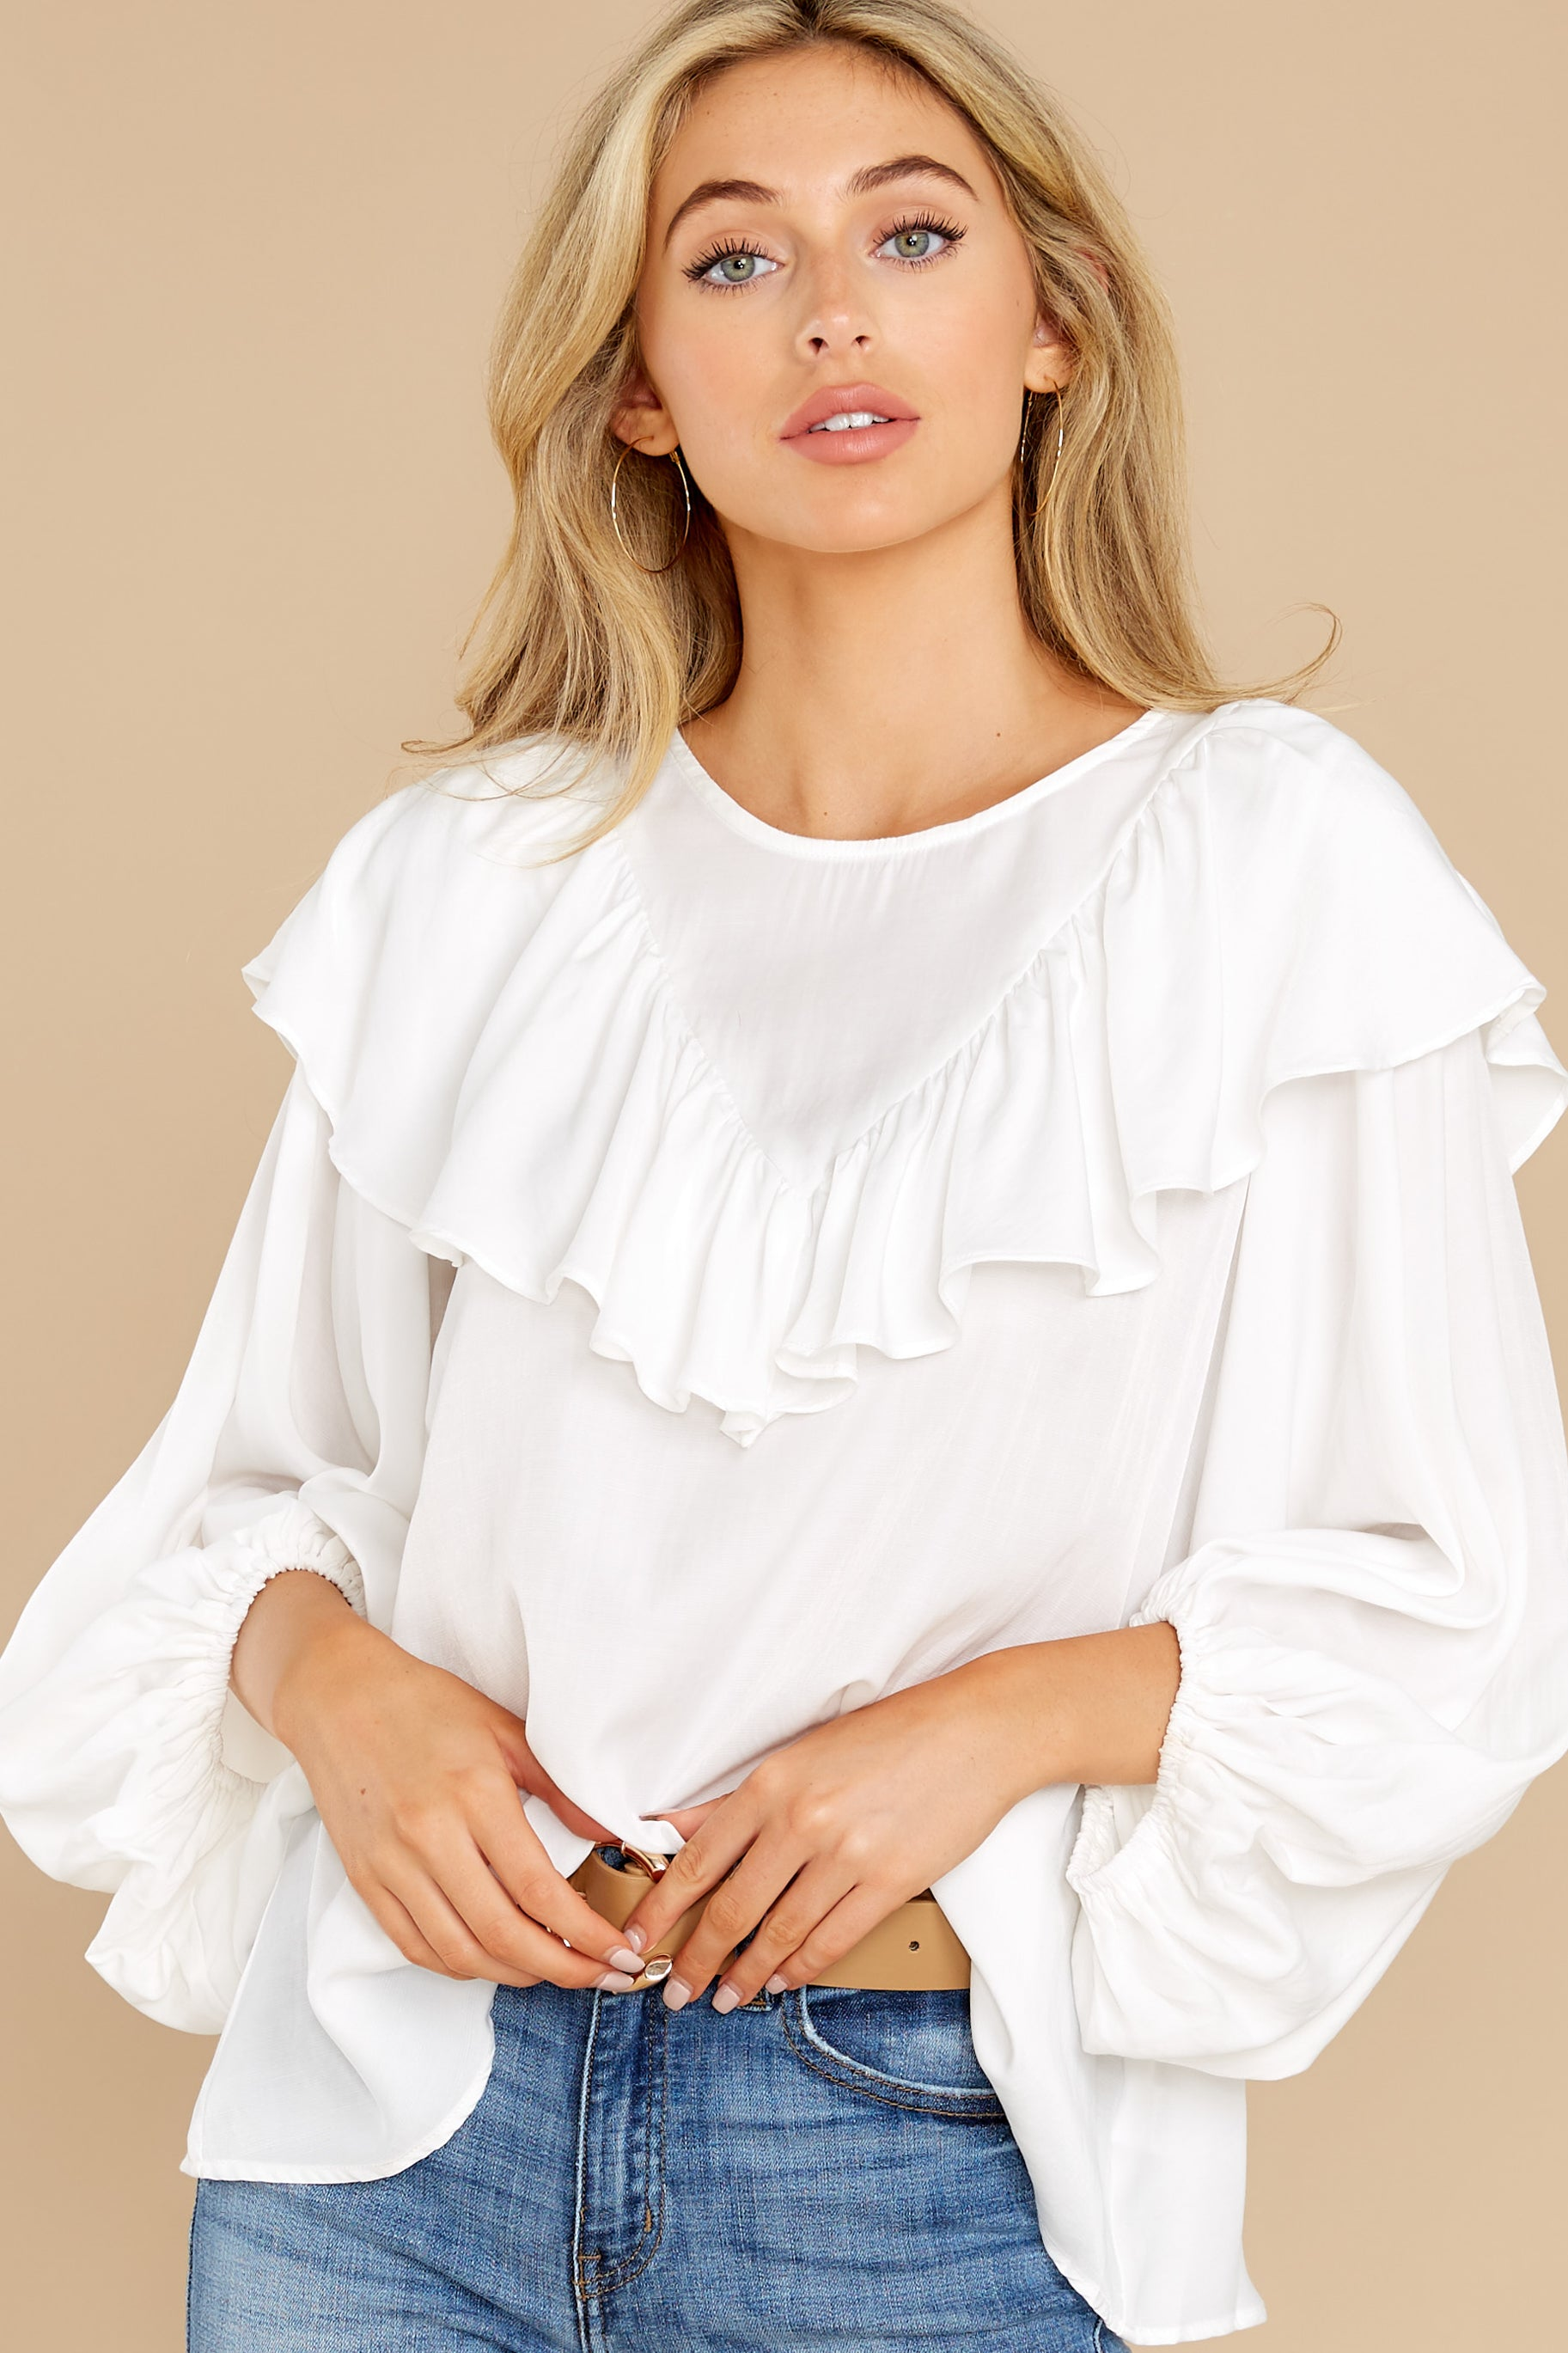 80s Tops, Shirts, T-shirts, Blouse Losing Time White Top $36.00 AT vintagedancer.com